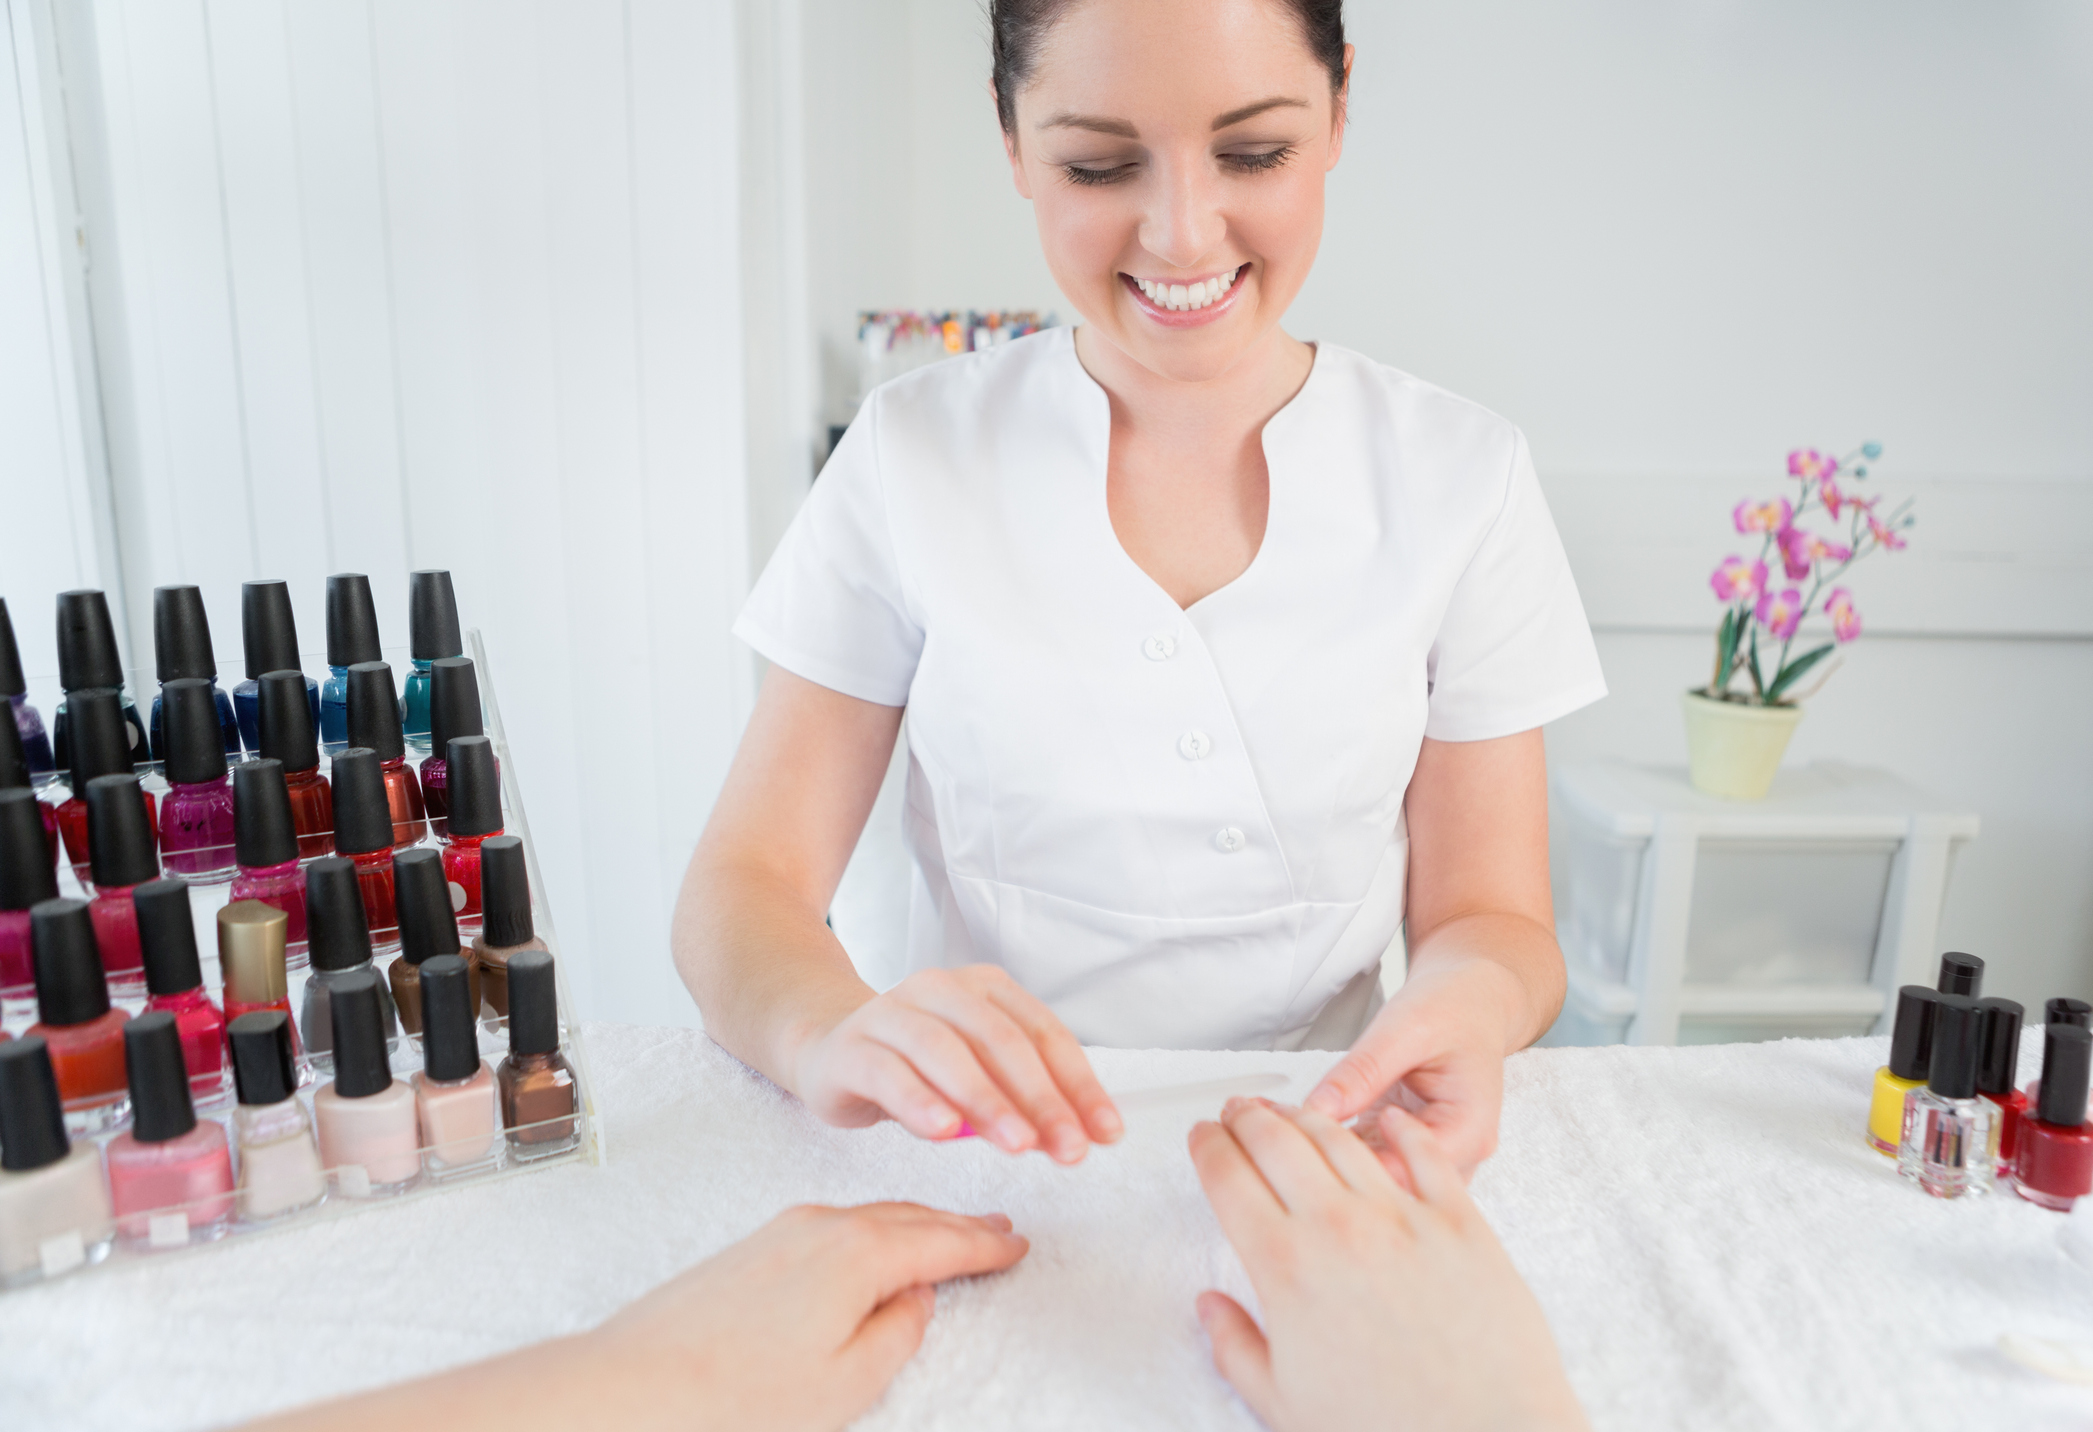 What Are the Different Types of Manicures | LoveToKnow